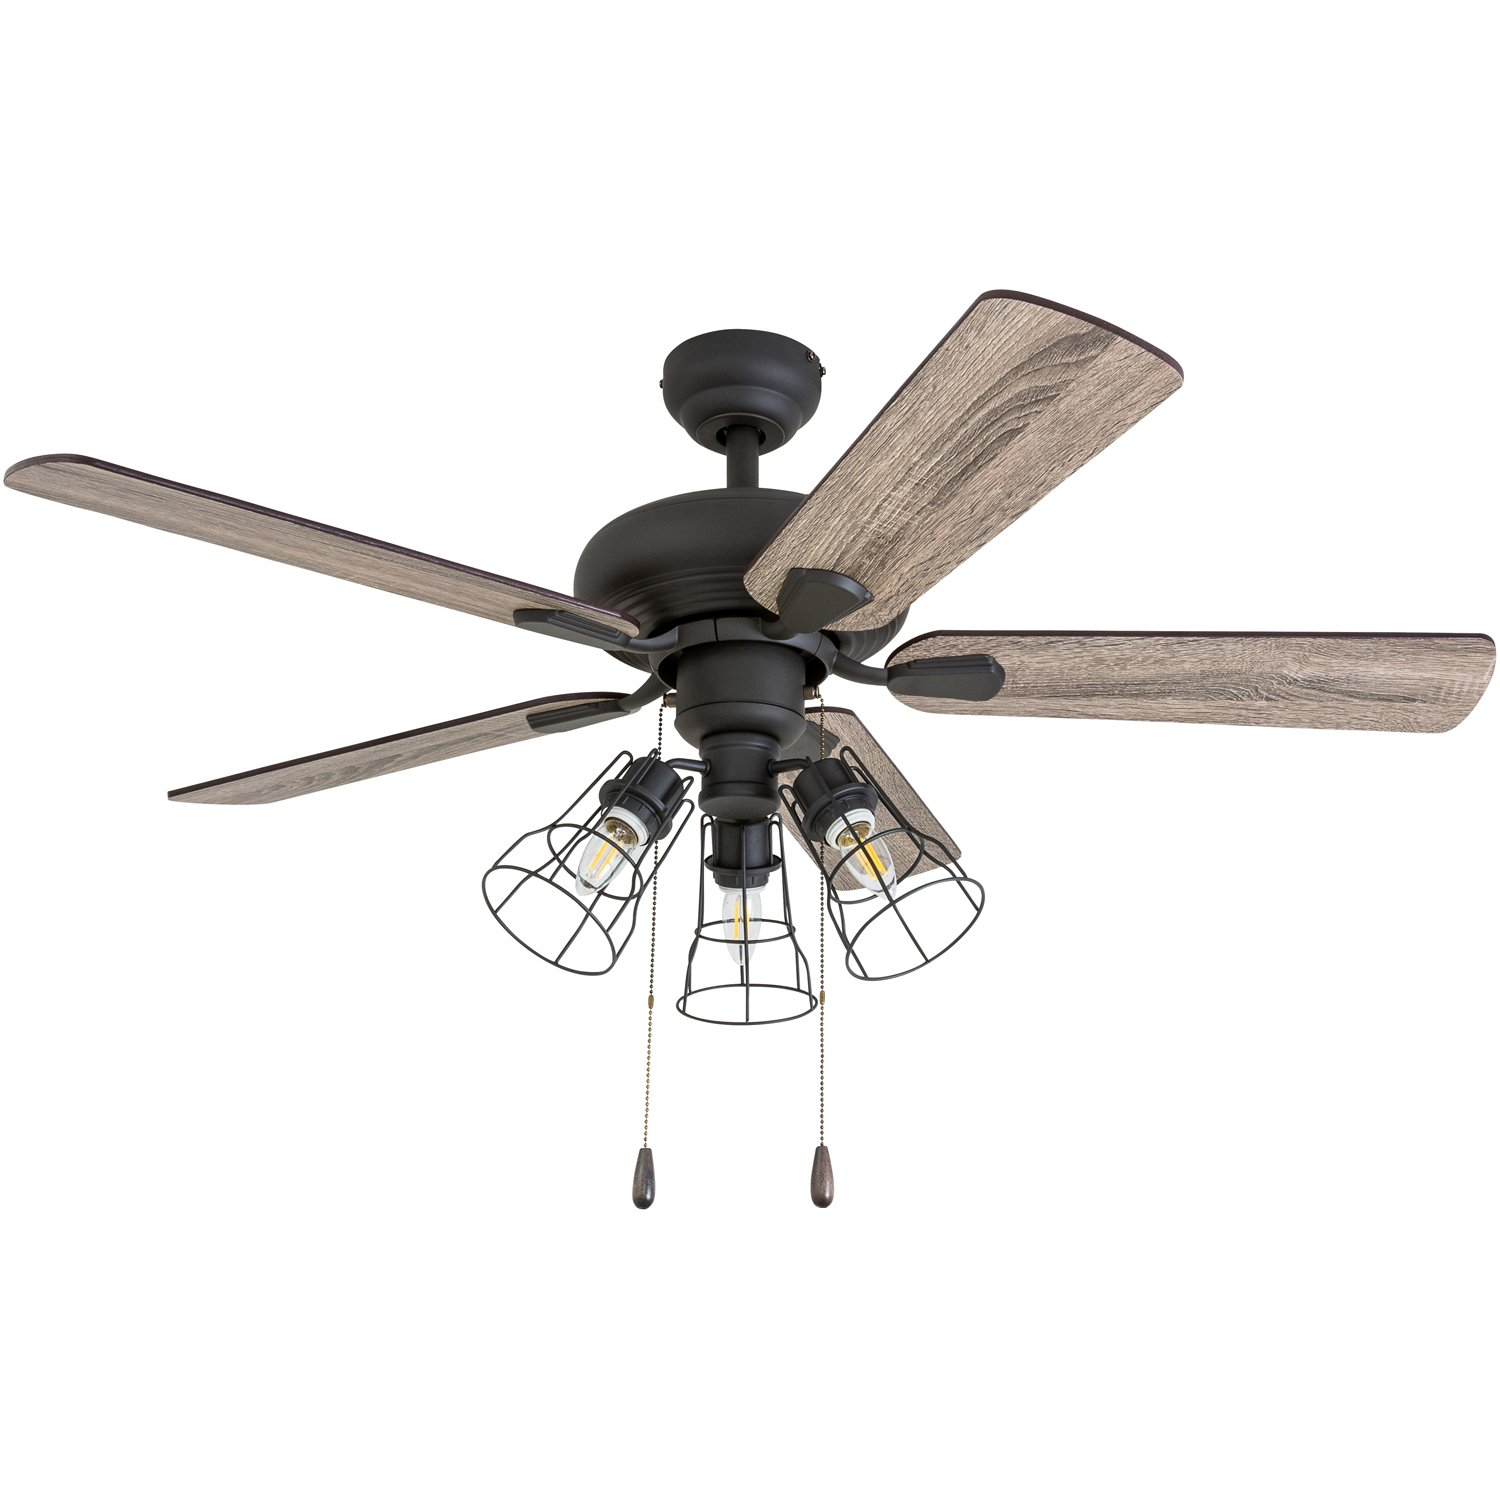 Prominence Home 50752-01 Madison County Industrial Ceiling Fan (3 Speed Remote), 42'', Barnwood/Tumbleweed, Aged Bronze